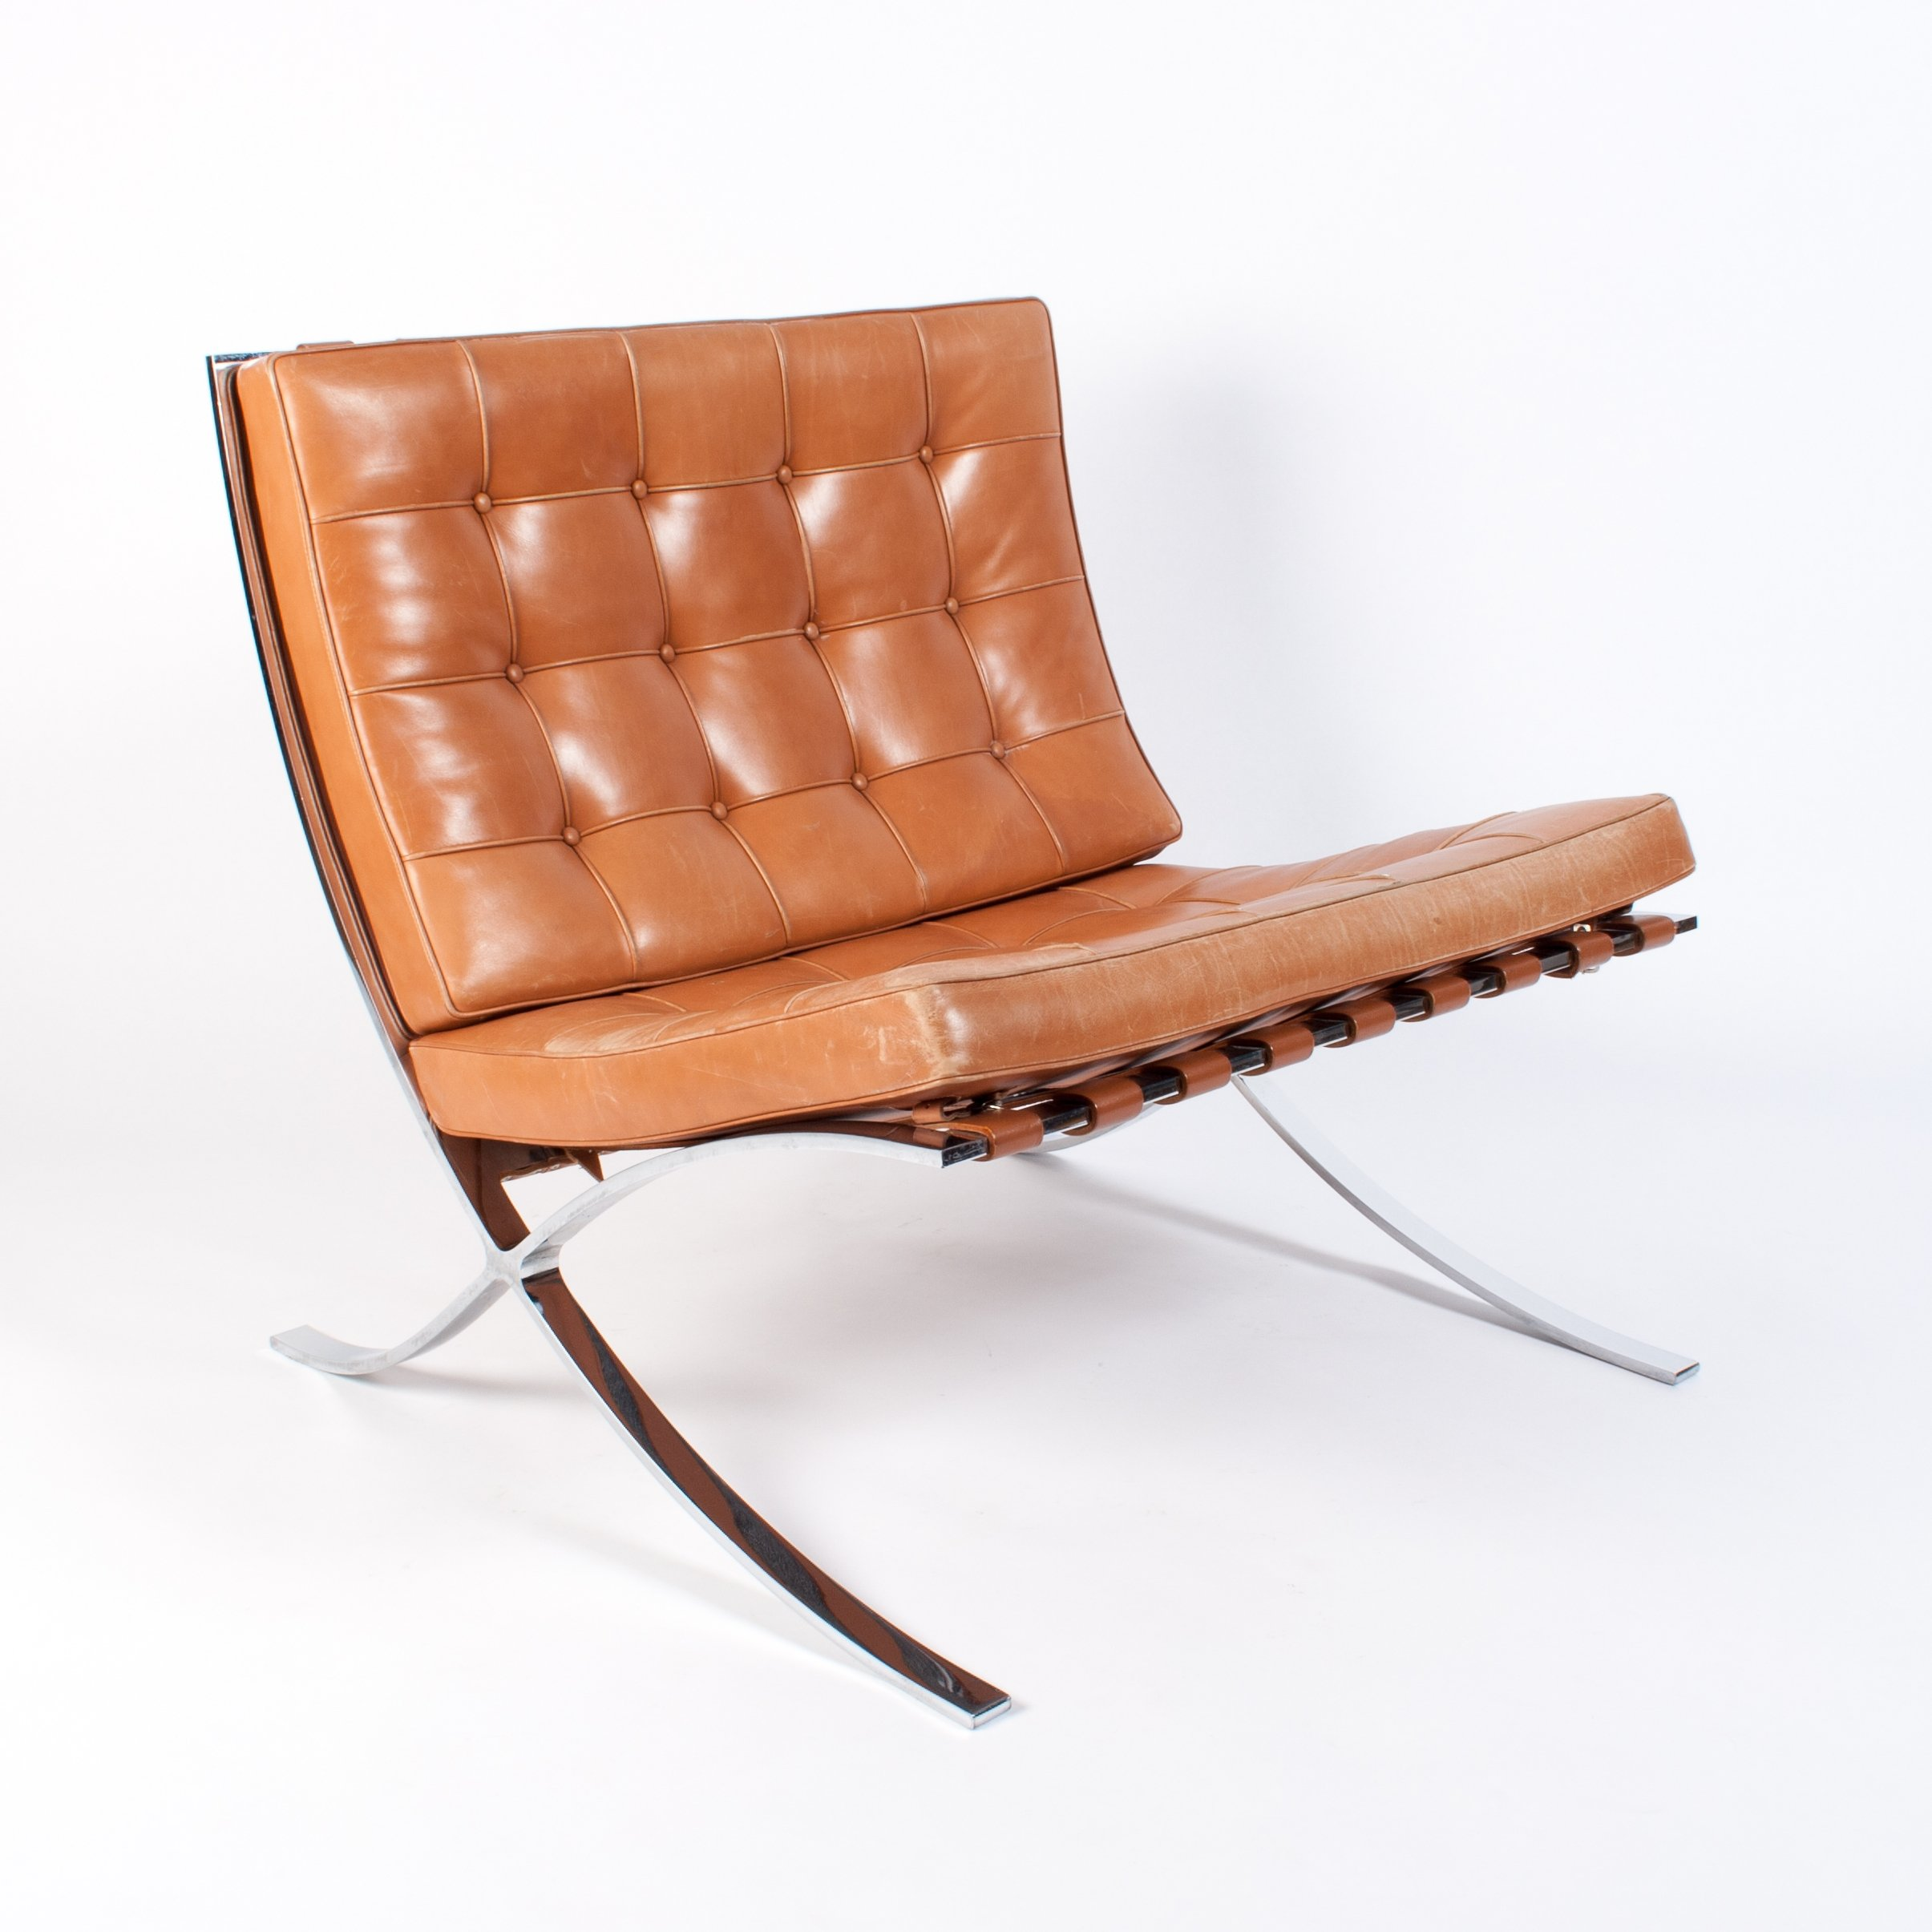 cognac leather barcelona chair by ludwig mies van der rohe for knoll 1990s 84021 cognac leather barcelona chair by